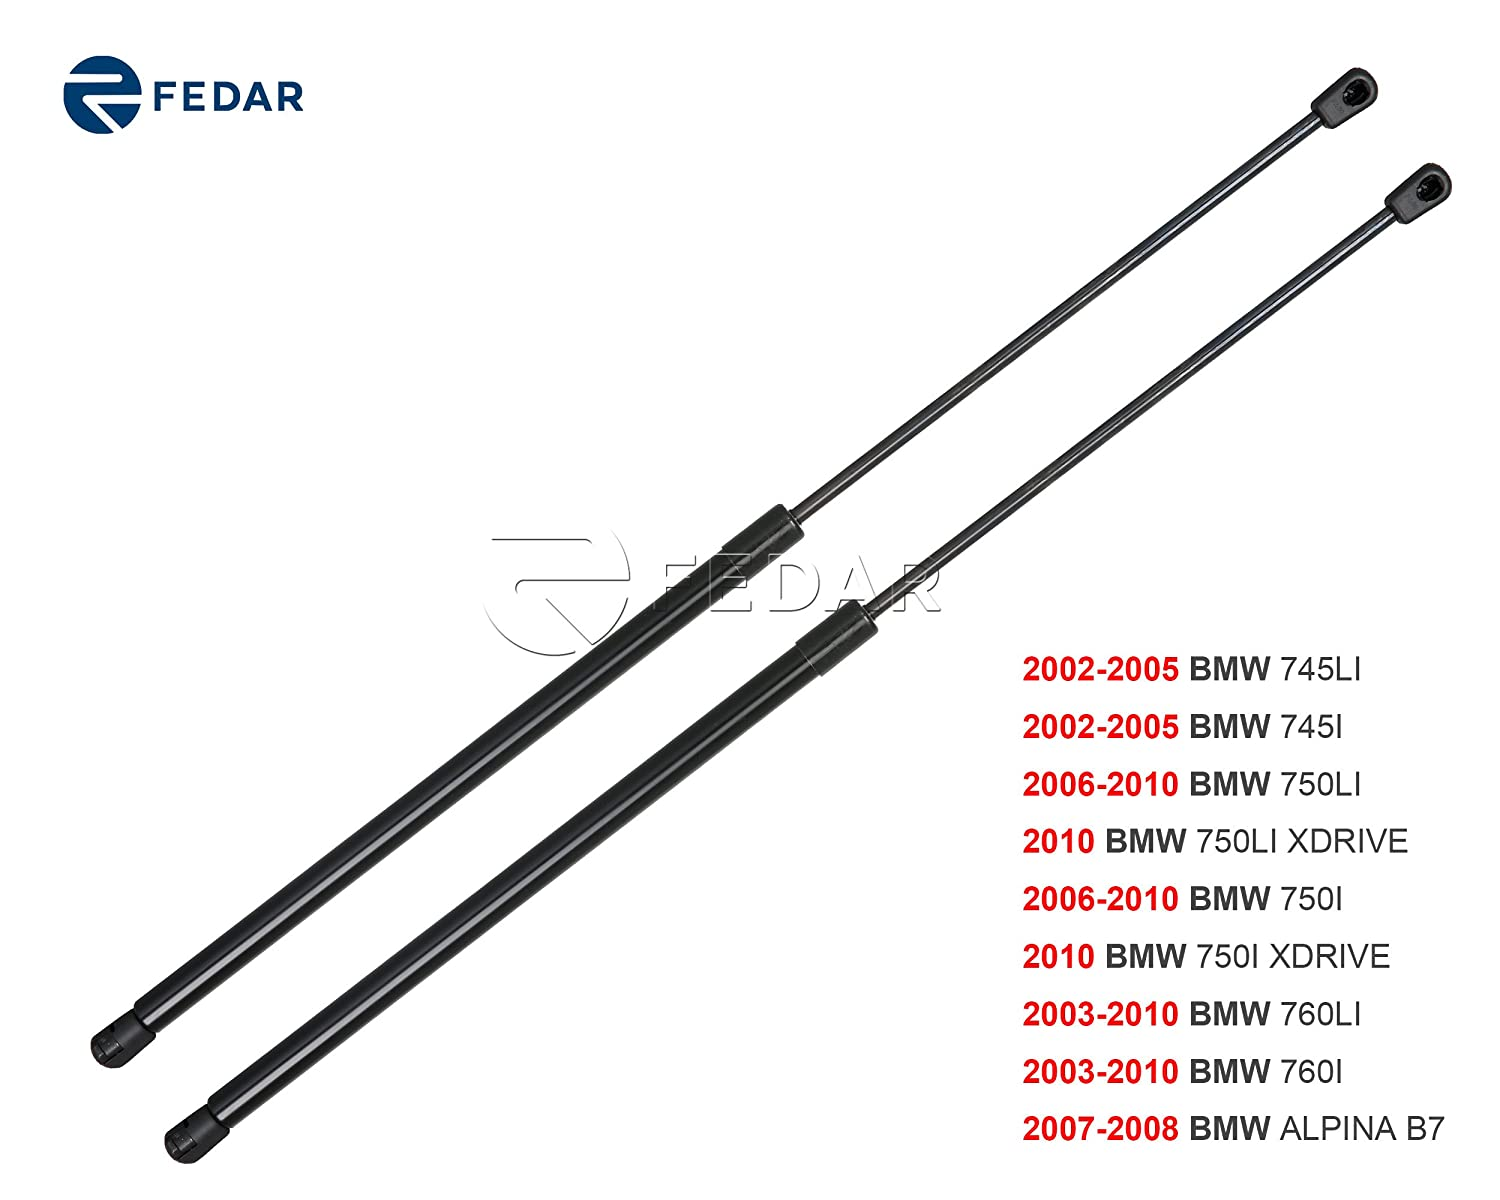 Fedar Front Hood Gas Charged Lift Support for 2002-2005 BMW 745/2006-2010 BMW 750/2003-2010 BMW 760 Fedar Group Inc